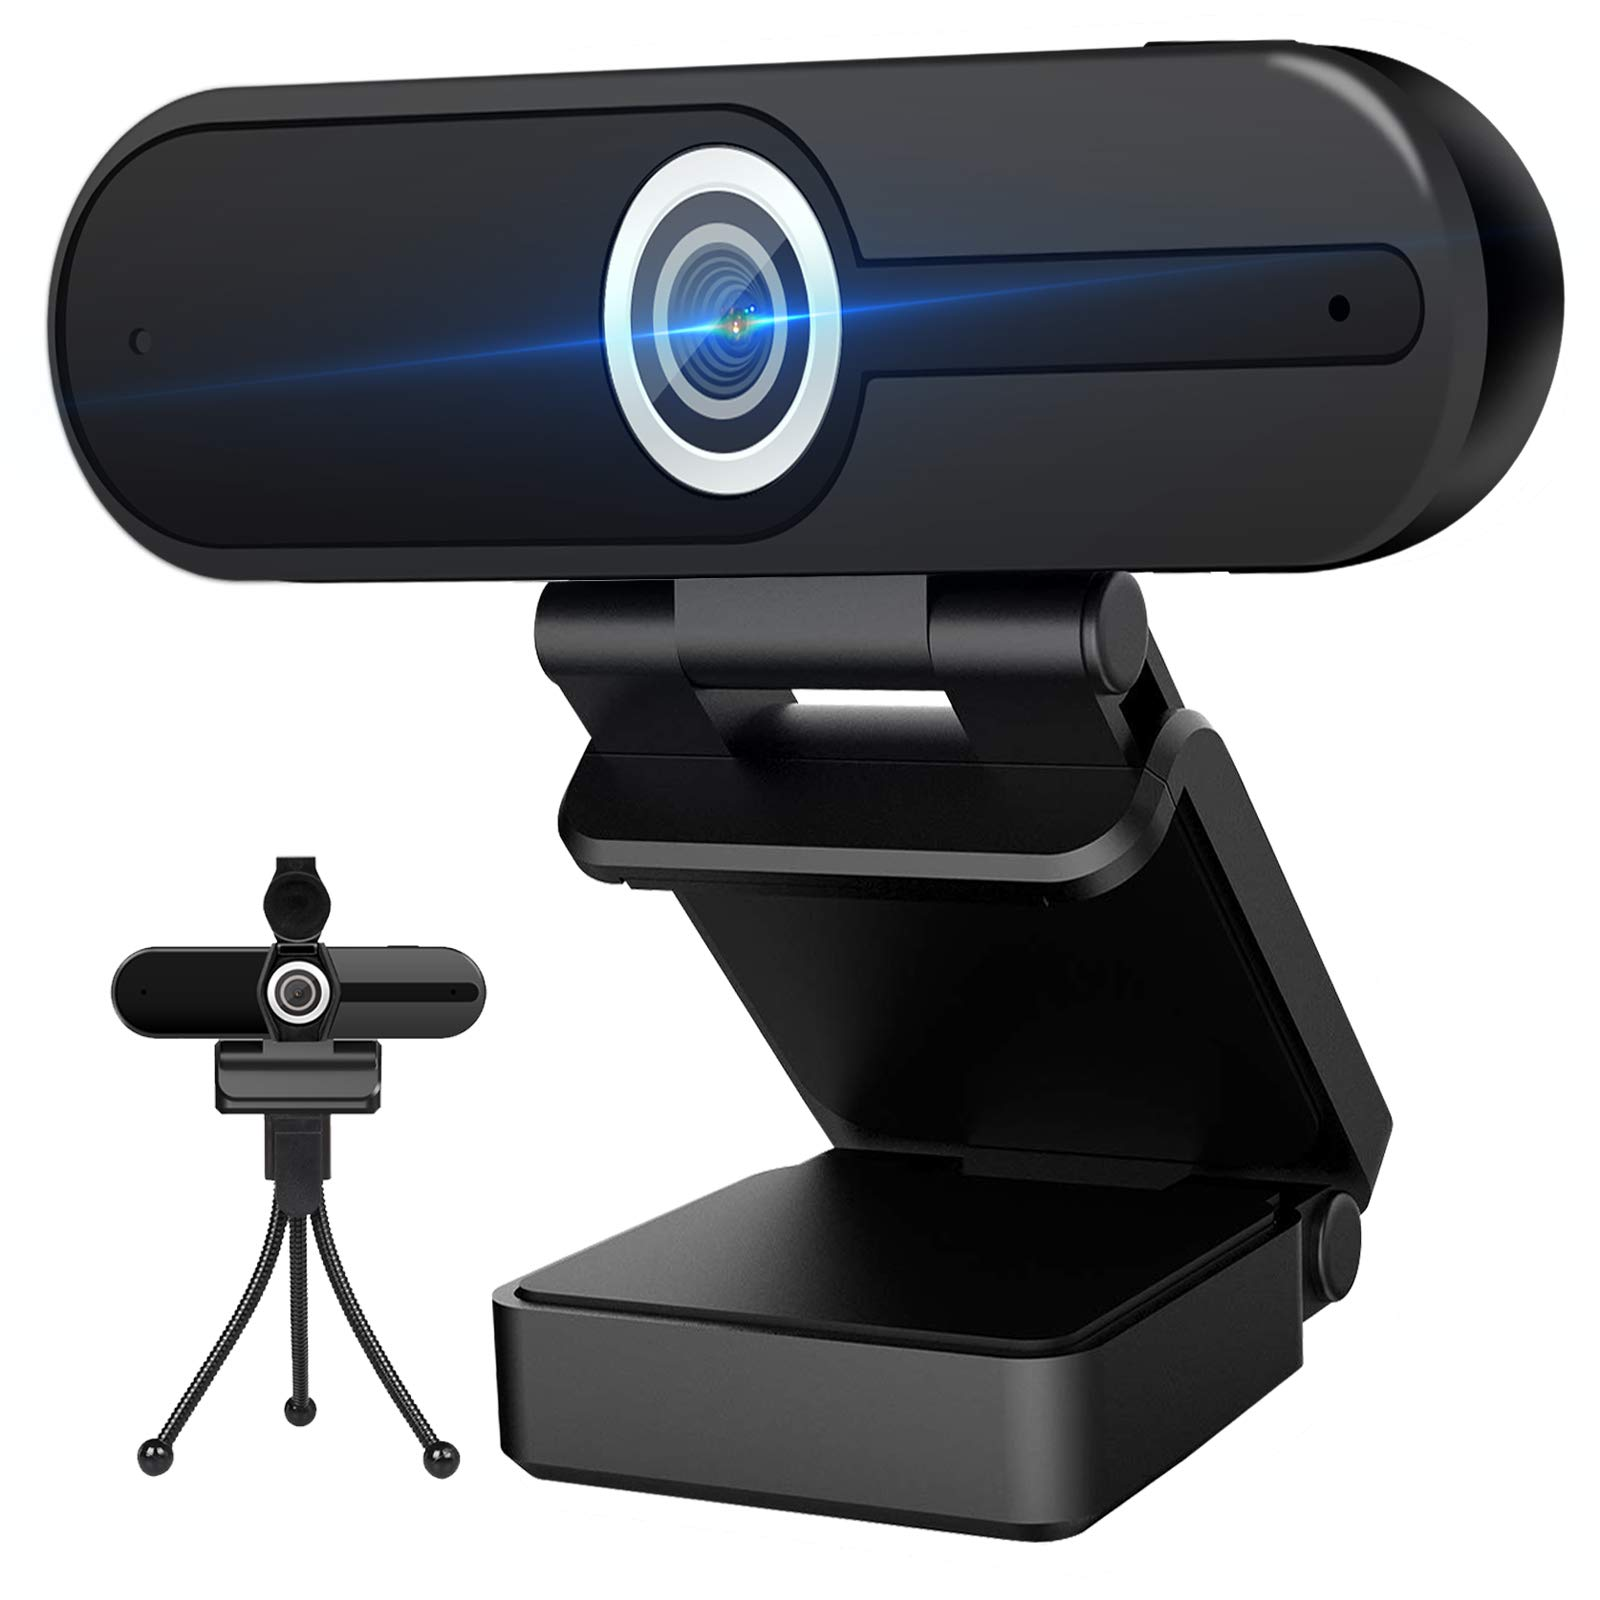 4K Webcam with Microphone Computer Camera 8MP USB Webcam 1080P for Video Calling, Conference, Streaming, Webcam with Privacy Cover and Mini Tripod